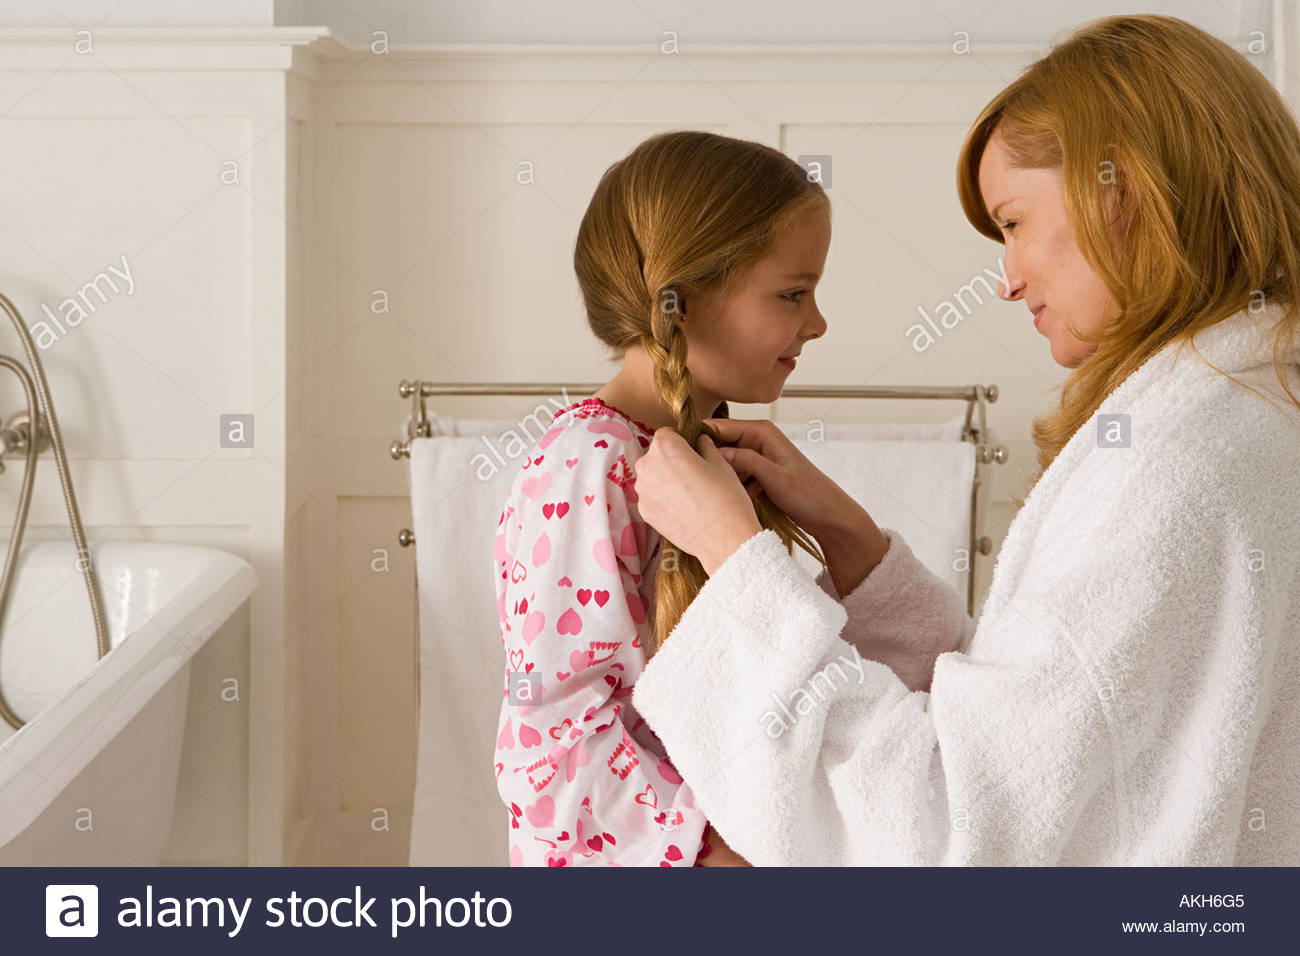 Mother plaiting daughter's hair - Stock Image